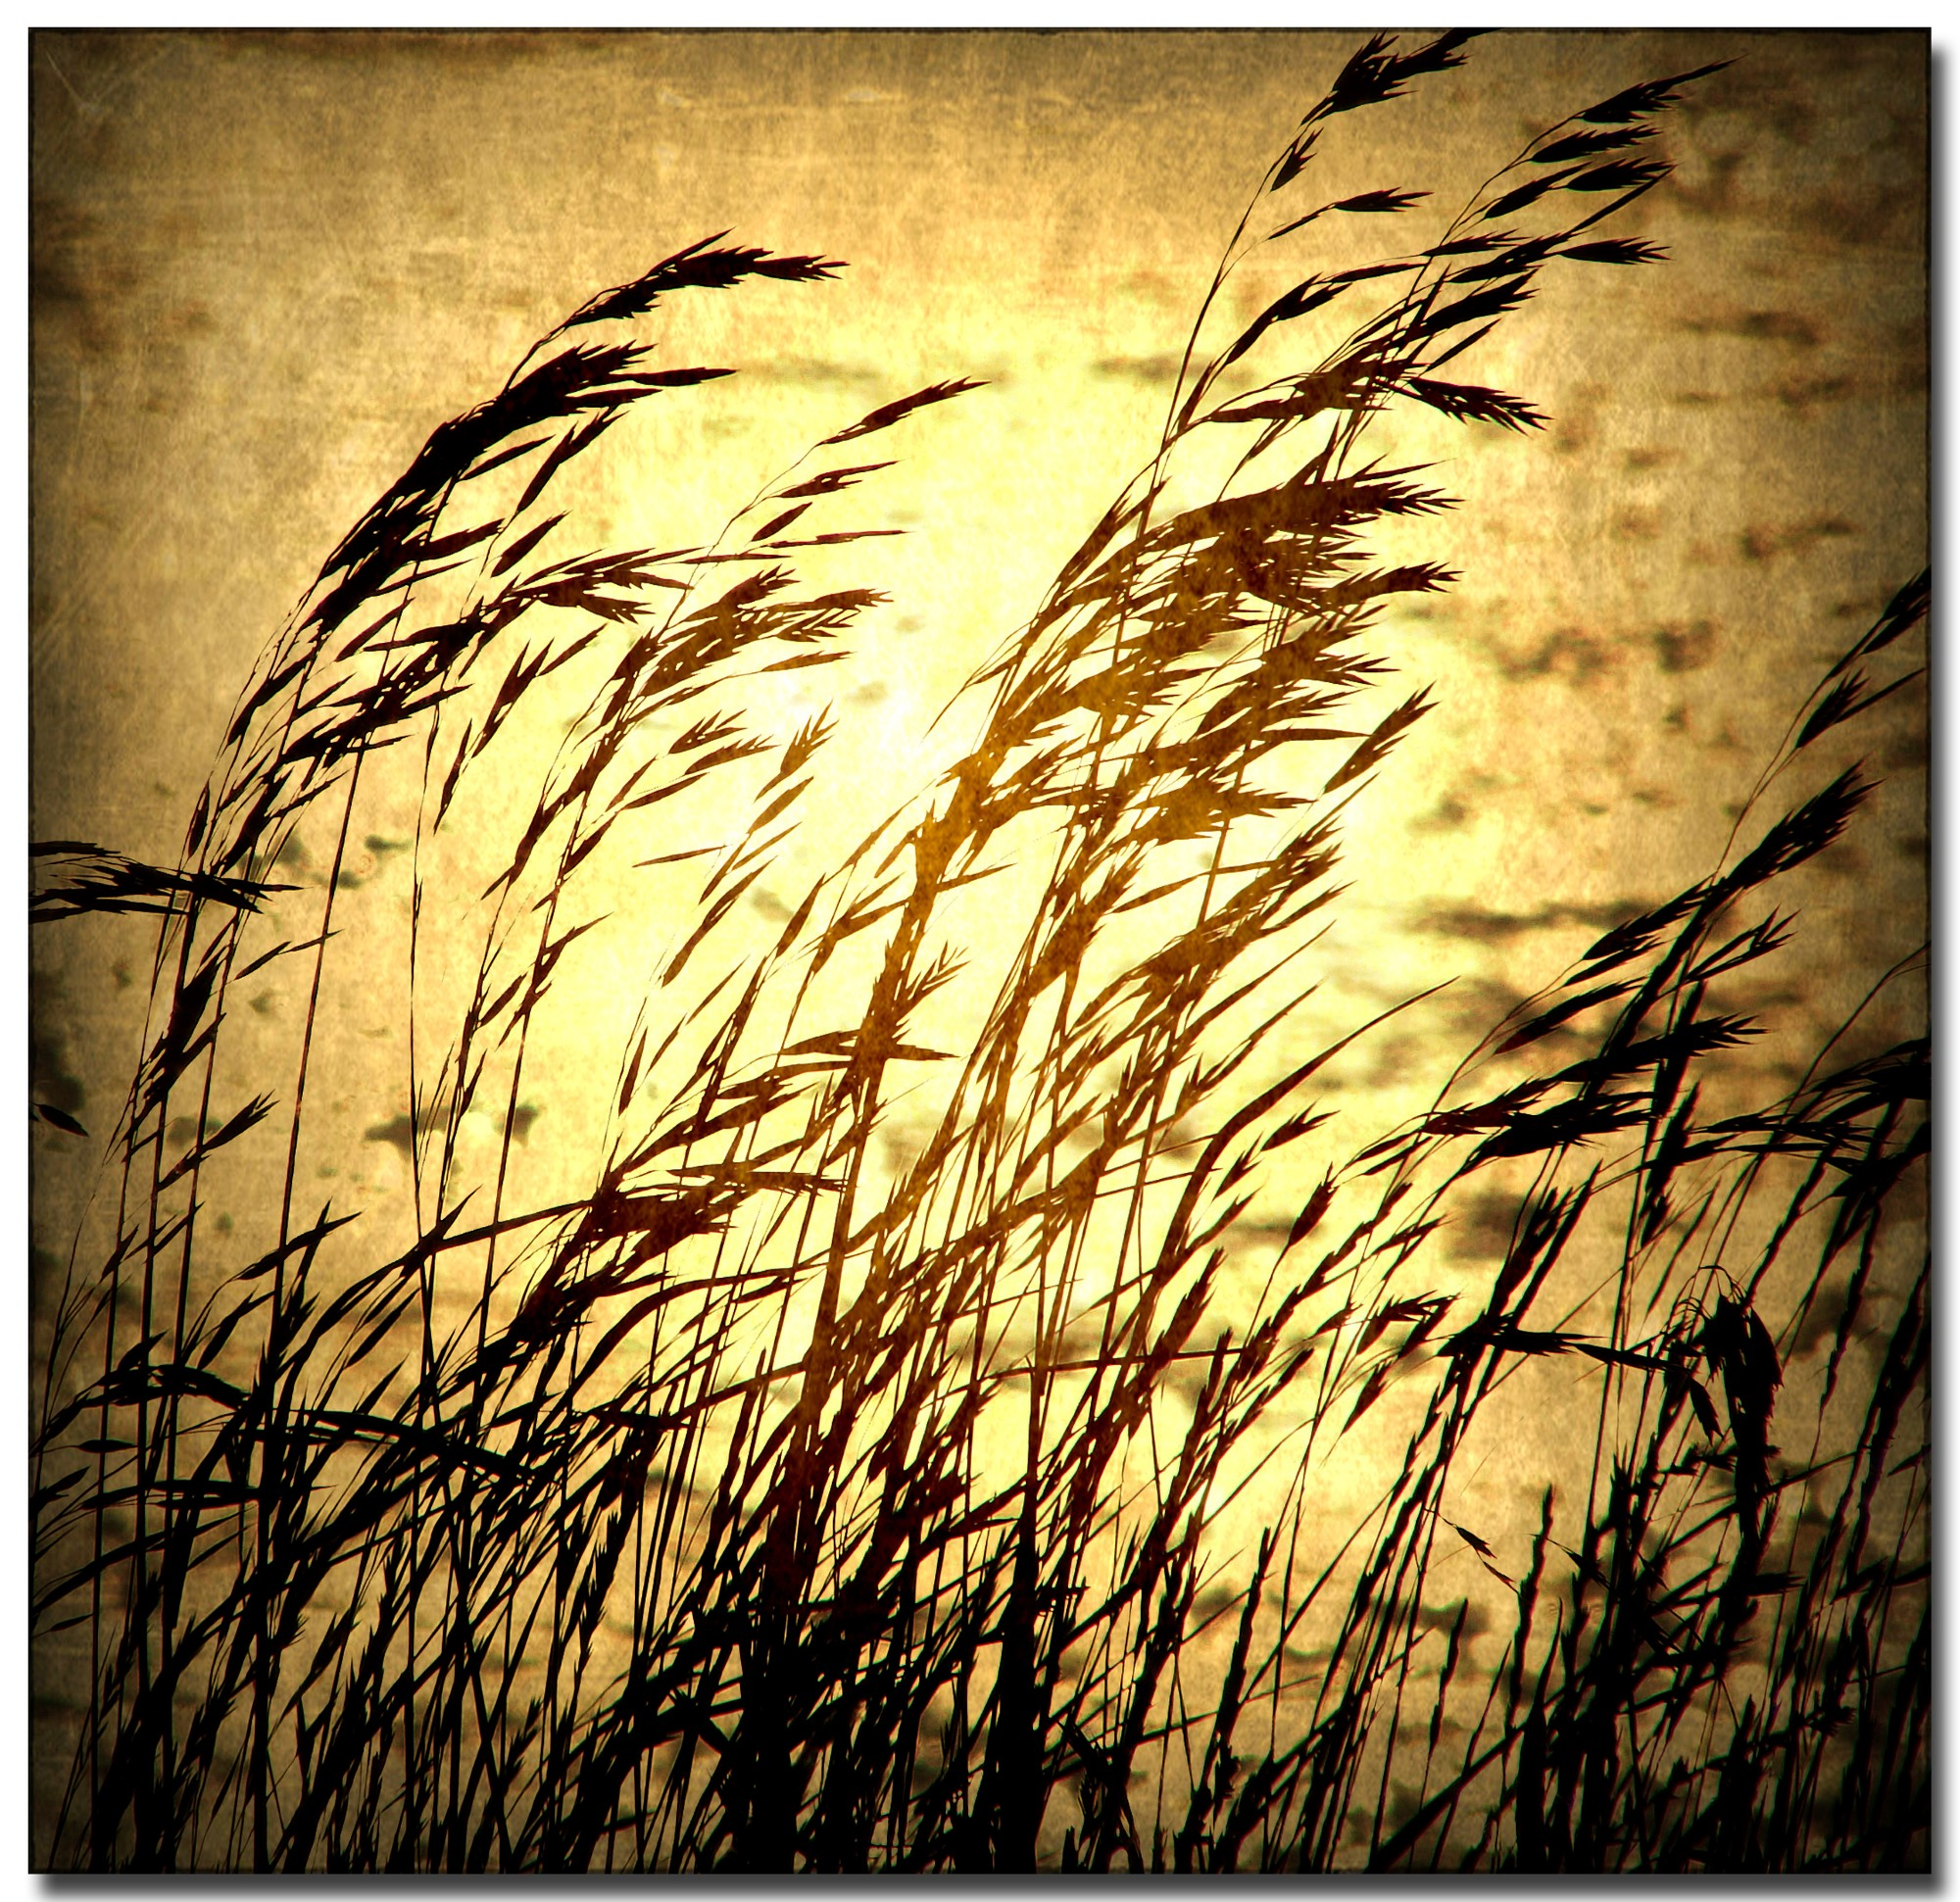 Silhoutted wheatgrass blowing against golden sepia background.